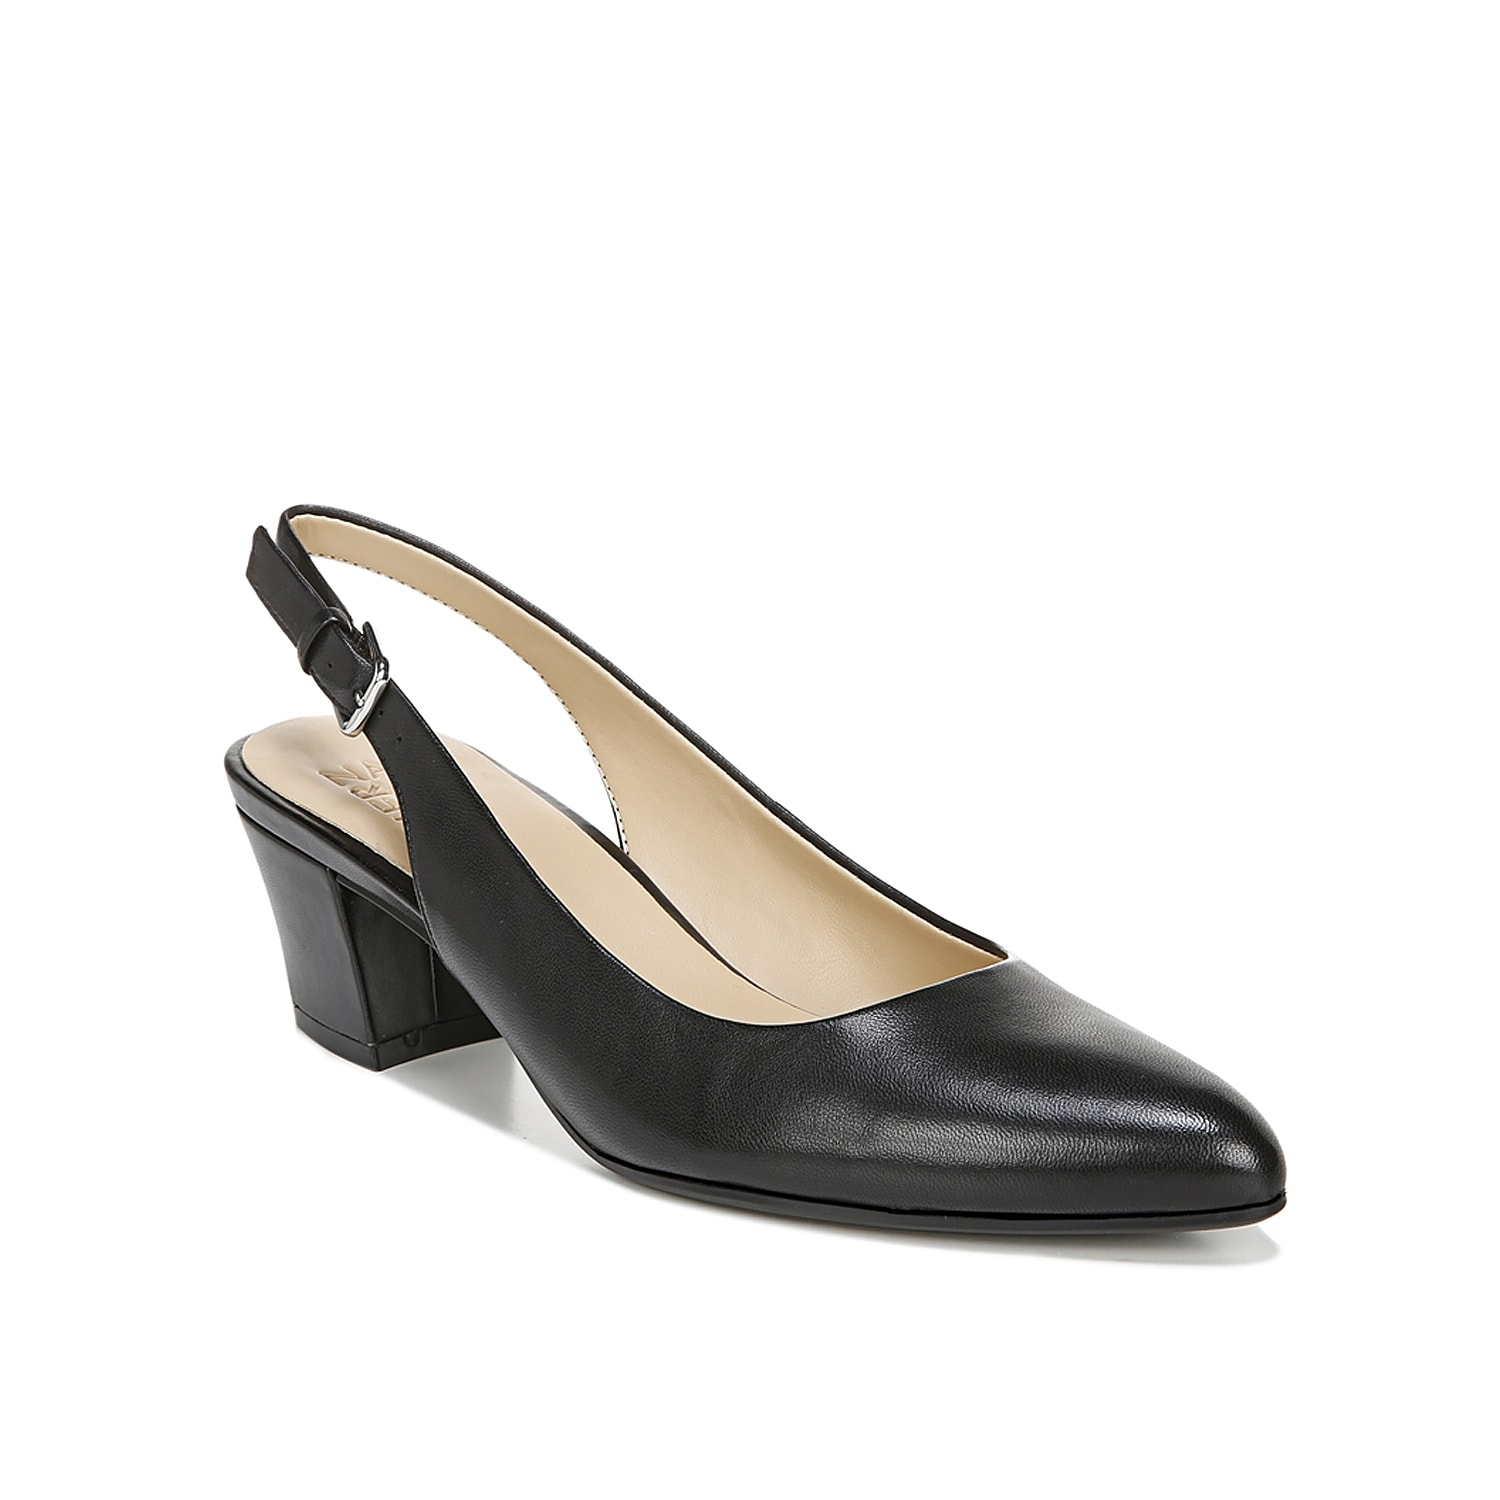 Give your ensemble a classic look with the Charlee pump from Naturalizer. This silhouette is fashioned with a leather upper and a dual density footbed for cloud-like steps!